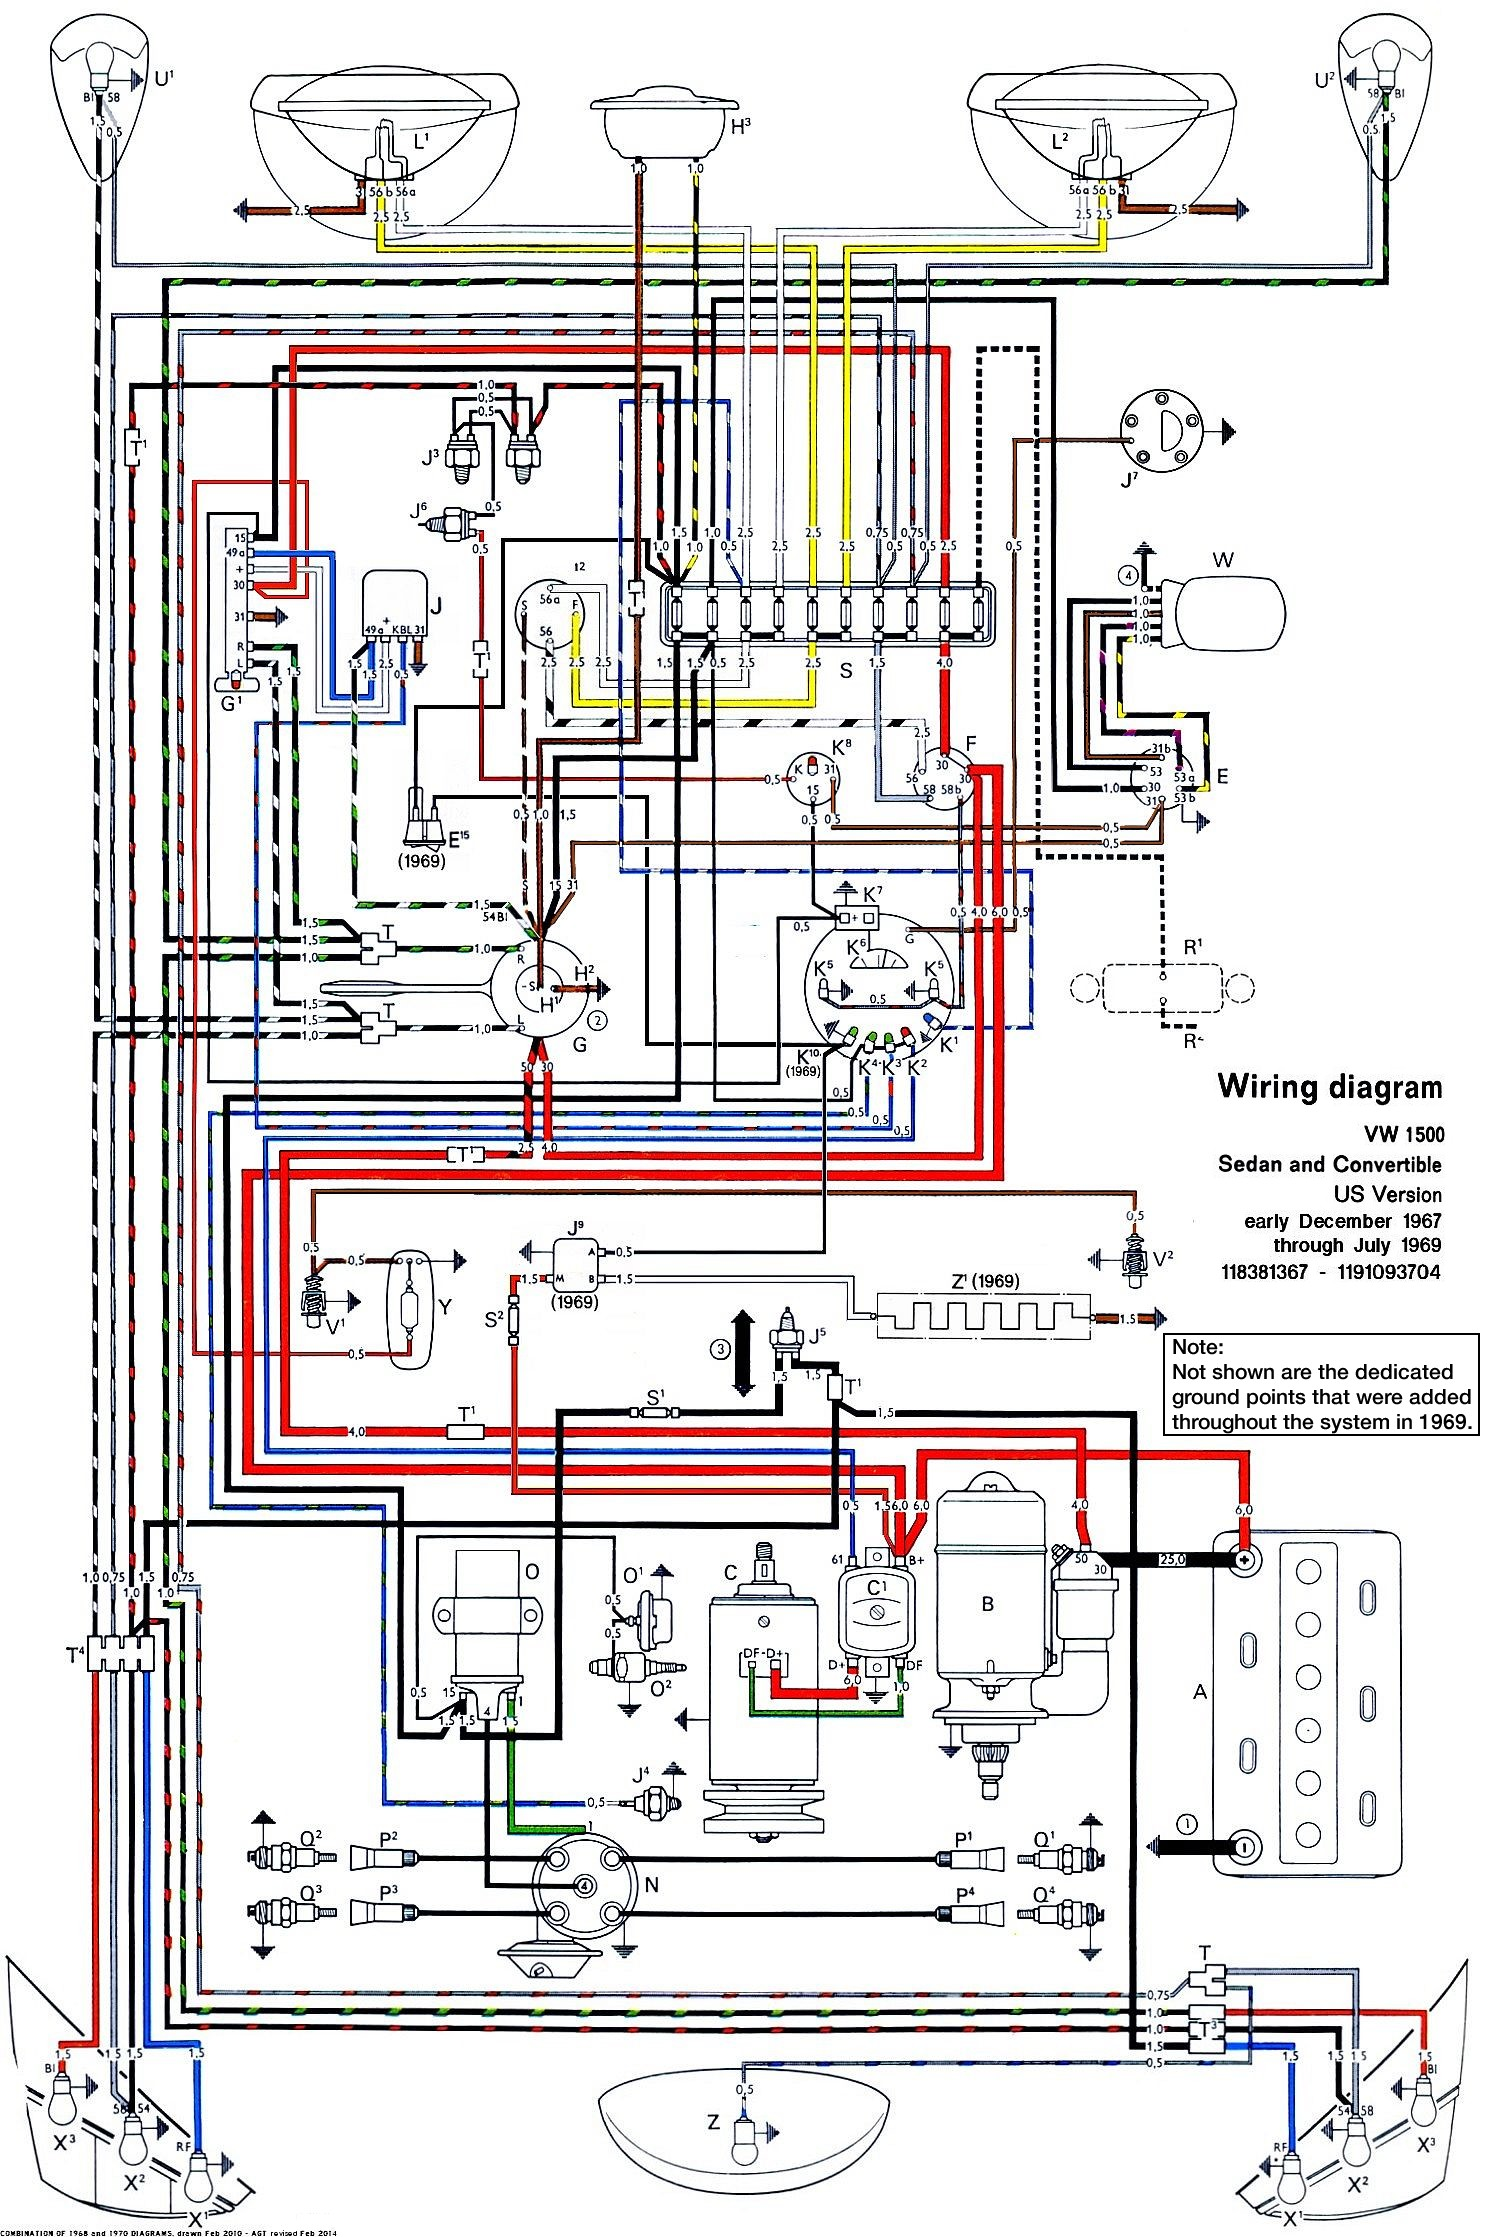 1970 chevy truck fuse box diagram with 1963 Type 1 Wiring Diagram on 1970 Chevelle Horn Relay Wiring Diagram moreover Painless Wiring Diagram For 1980 Chevy Truck in addition Tata besides Installing Of Honeywell Wi Fi Programmable Thermostat likewise 1970 Vw Turn Signal Wiring Diagram.